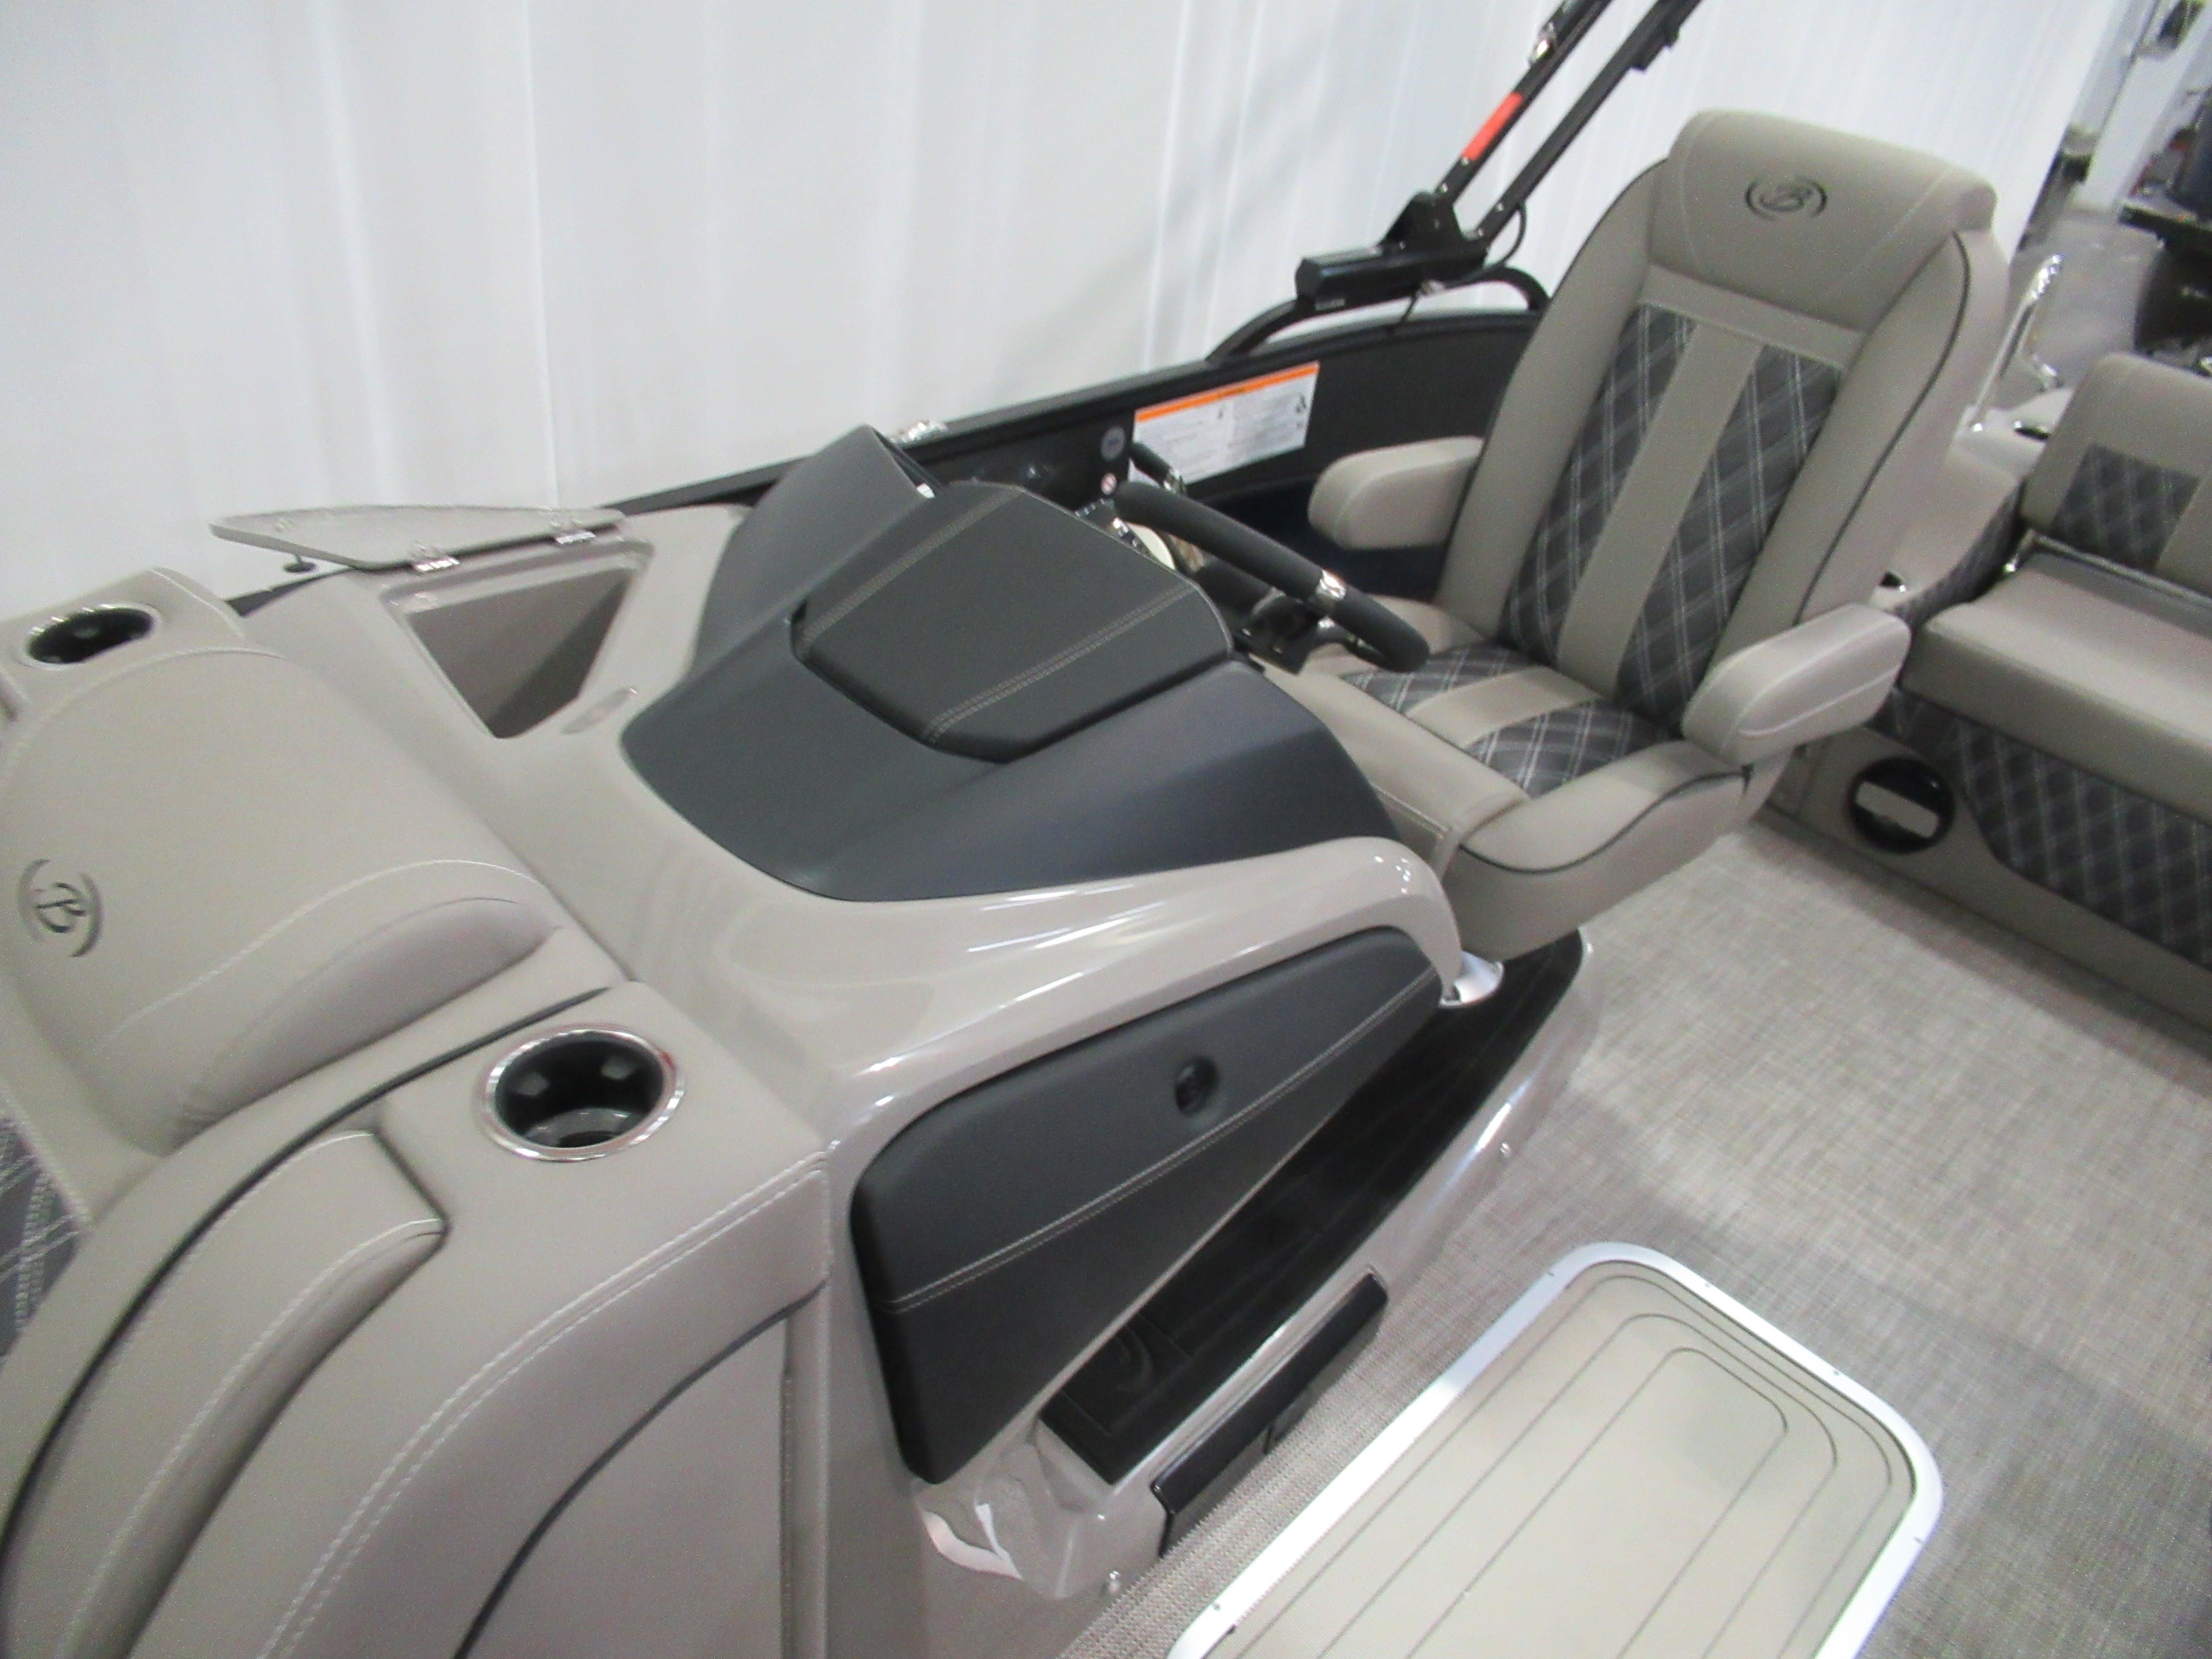 2021 Barletta boat for sale, model of the boat is L25uc & Image # 7 of 11